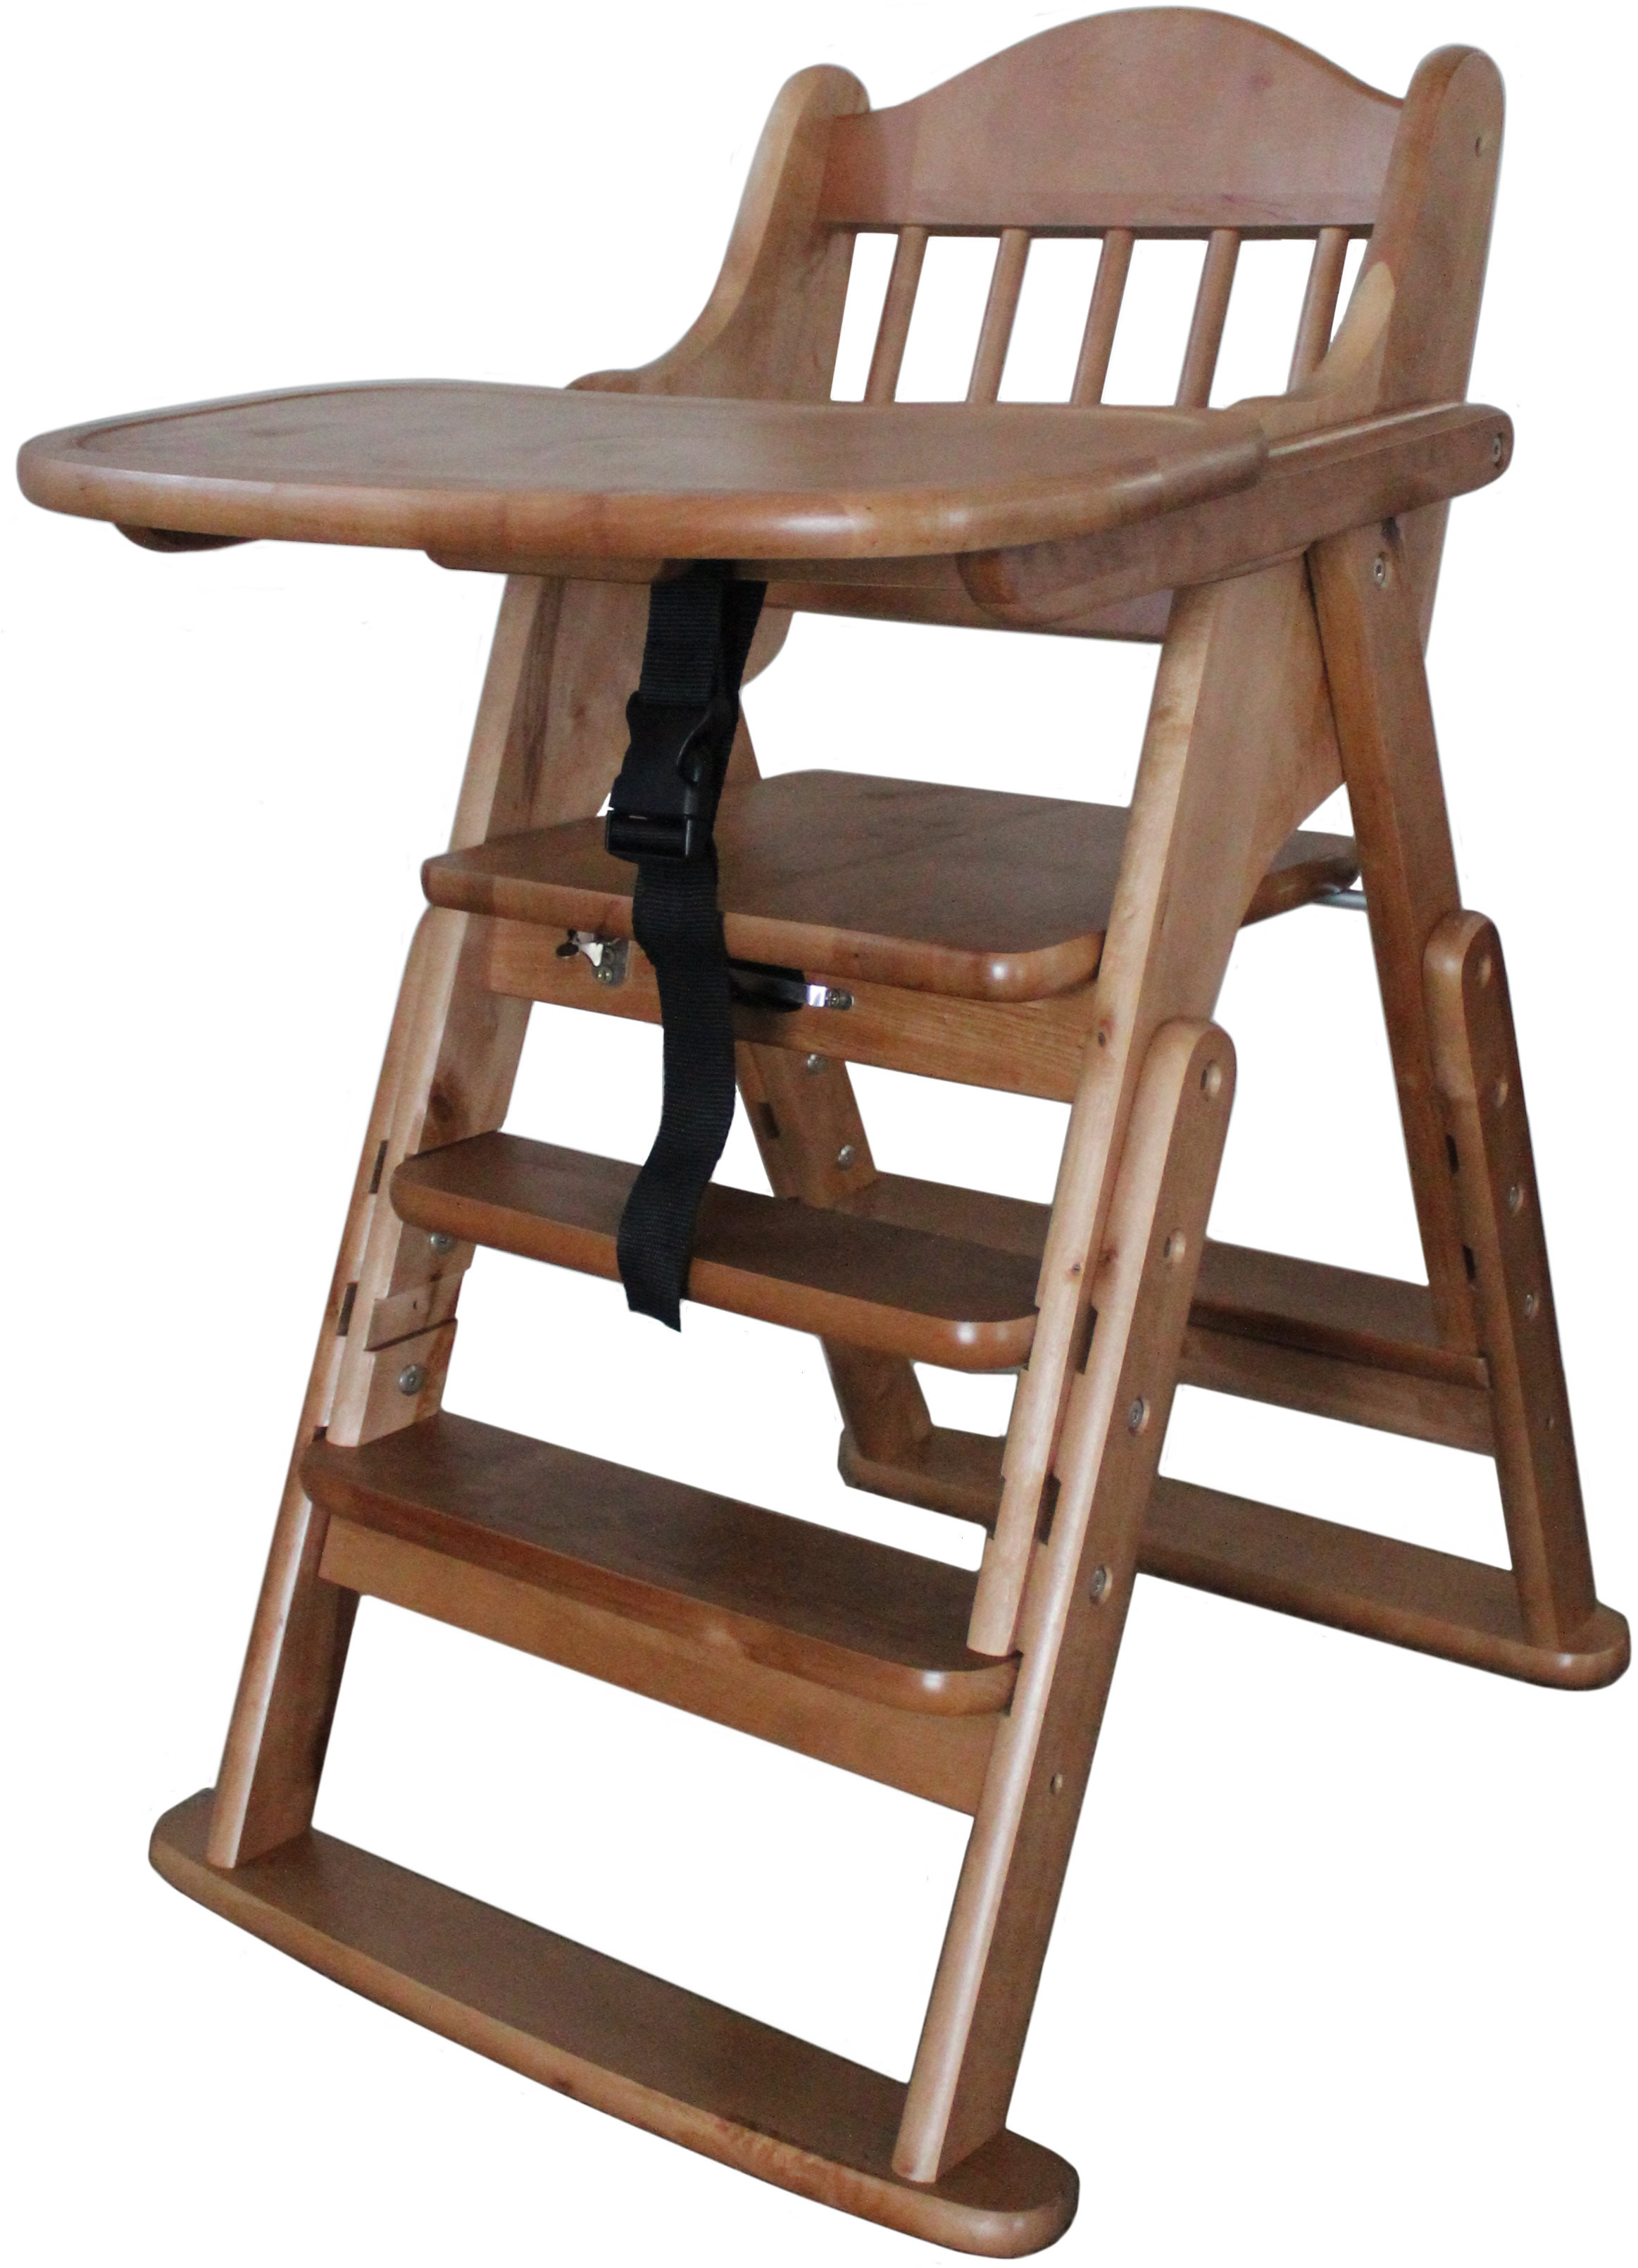 Wooden High Chairs For Babies Multifunction Solid Wood High Chair Front Bar Food Tray High